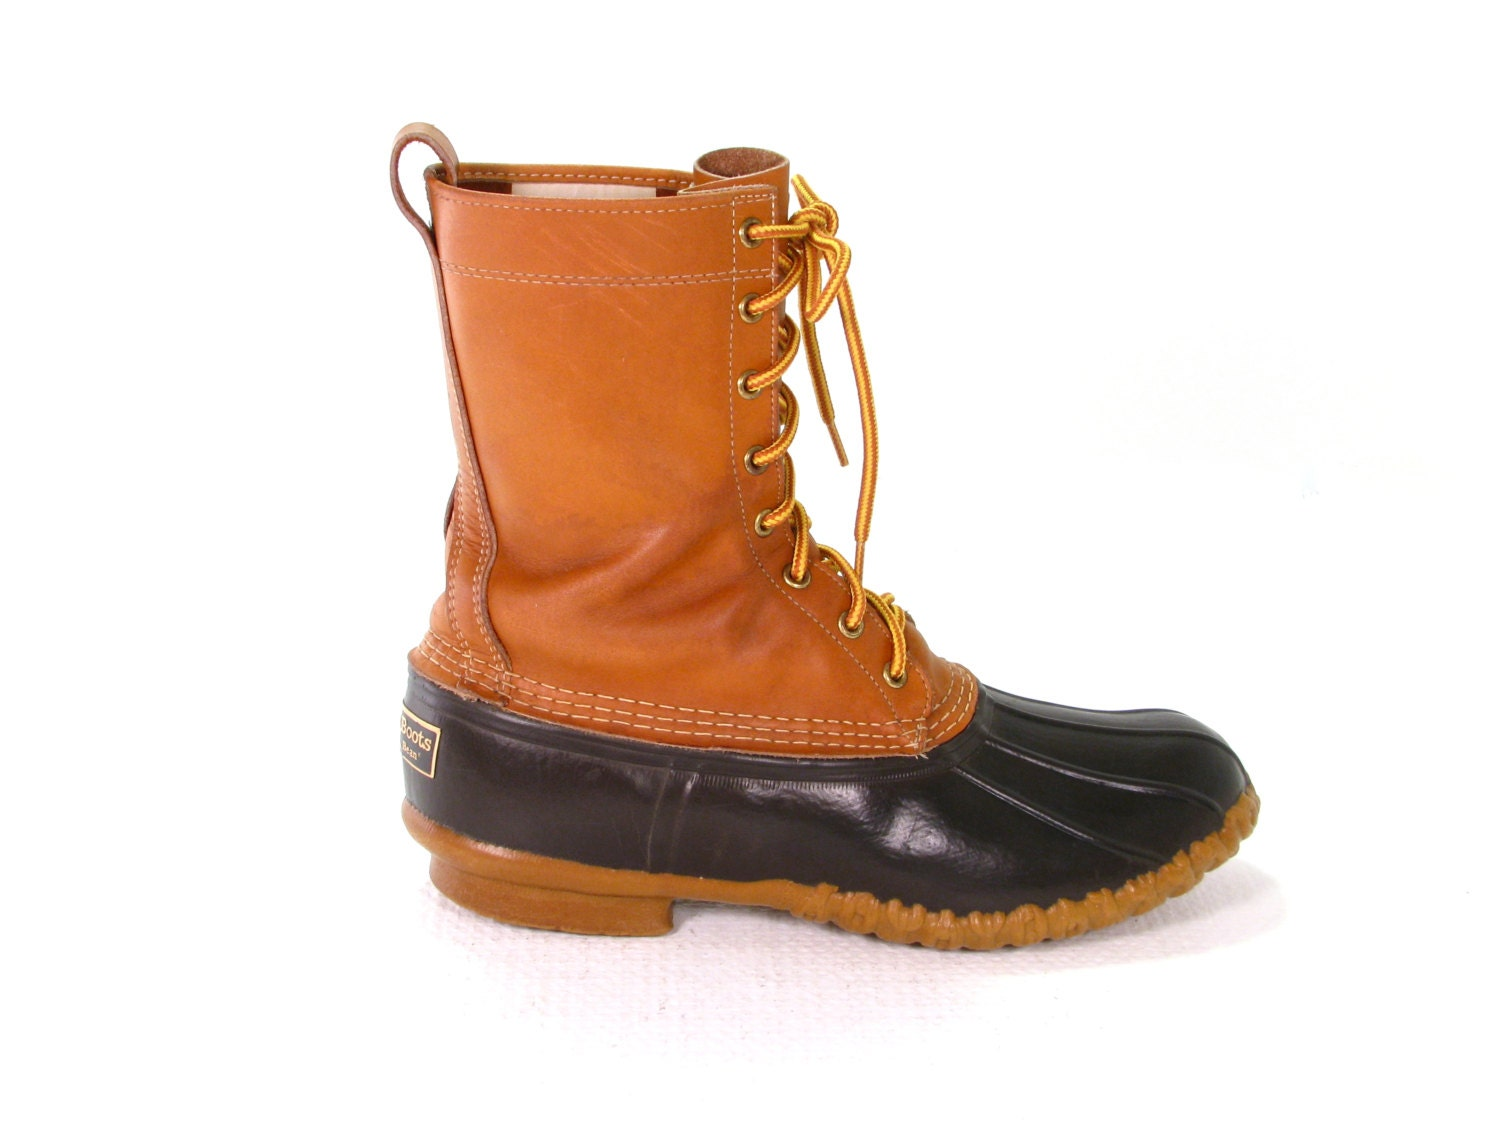 www.etsy.com/listing/118766412/reserved-vintage-ll-bean-boots-duck